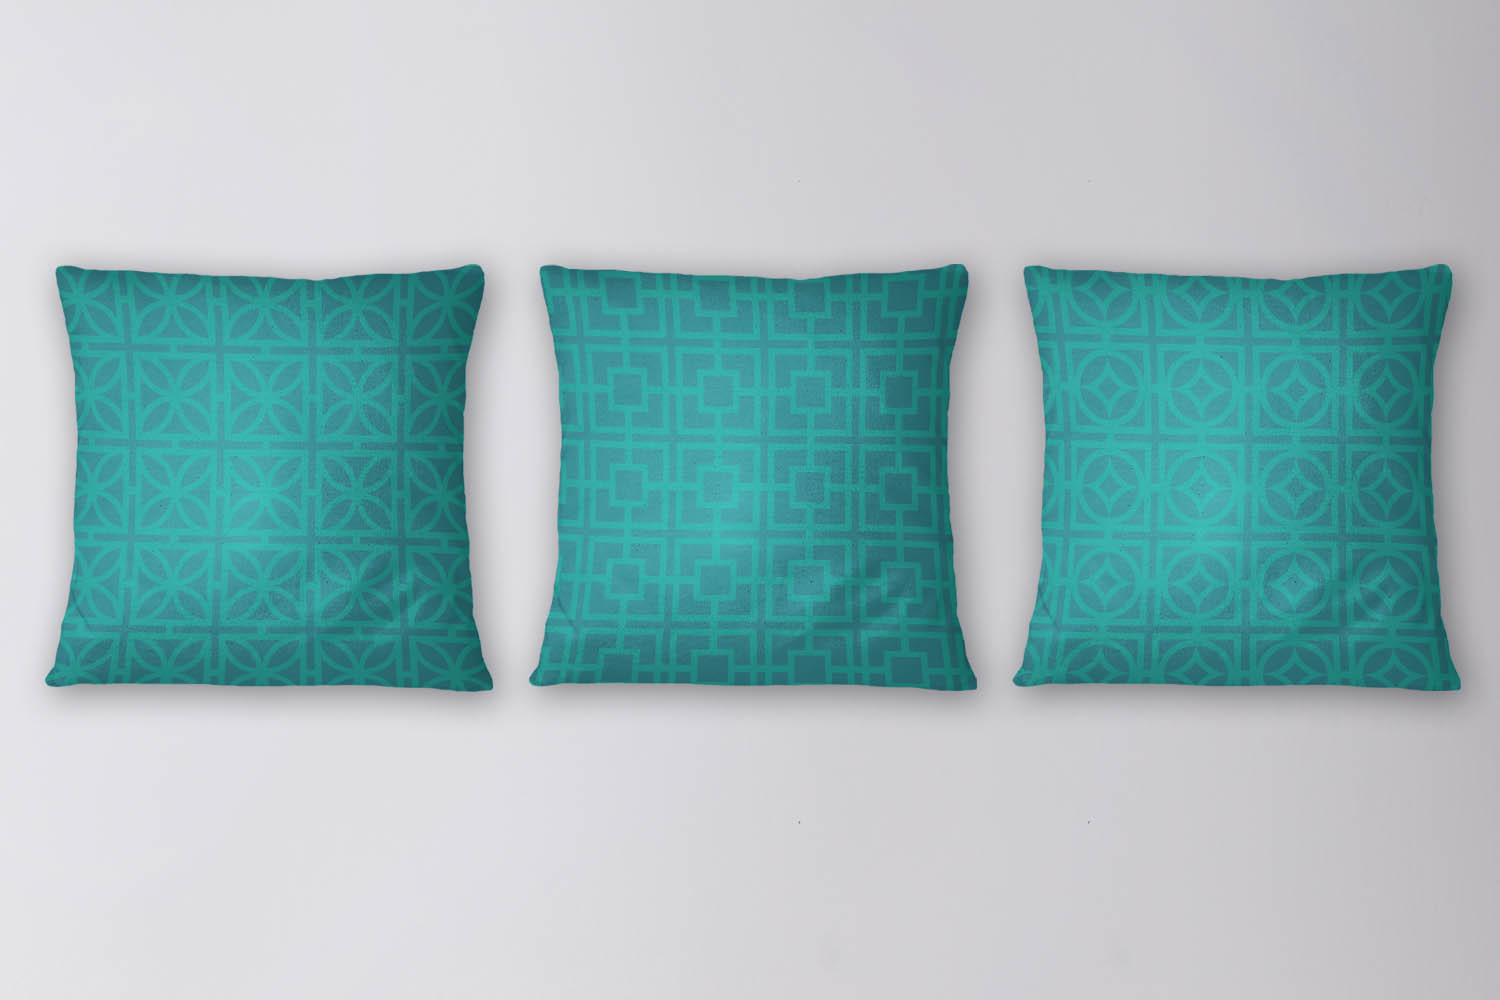 Teal Retro Breeze Block Patterns example image 2